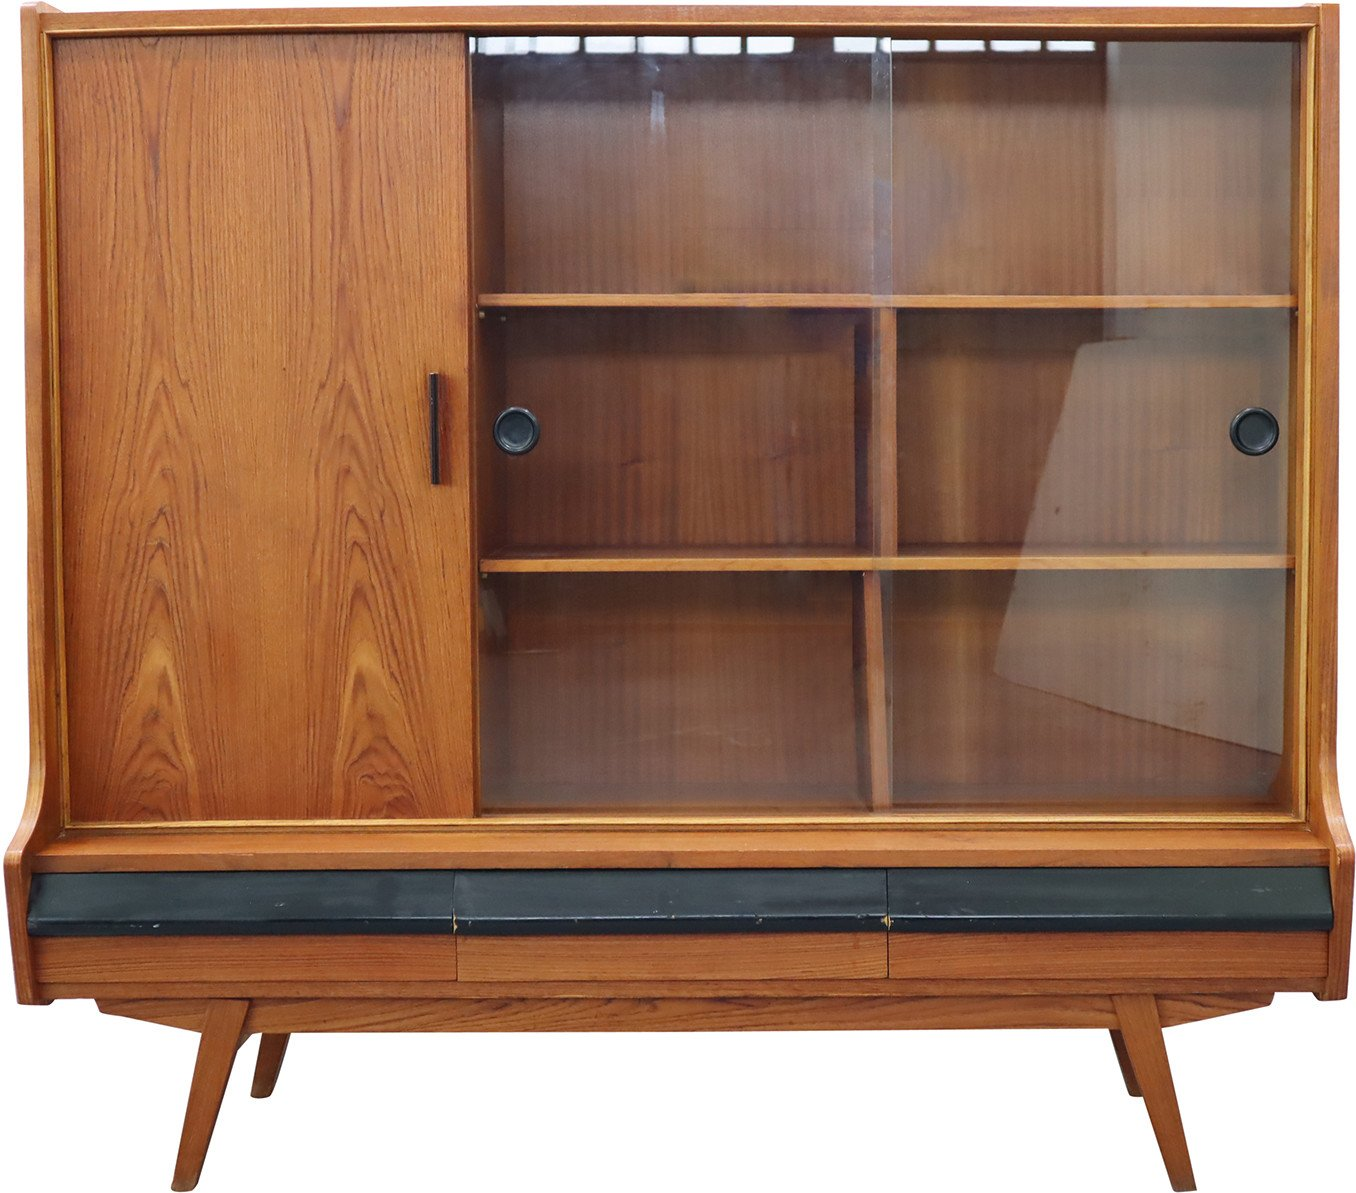 Highboard, Germany, 1960s